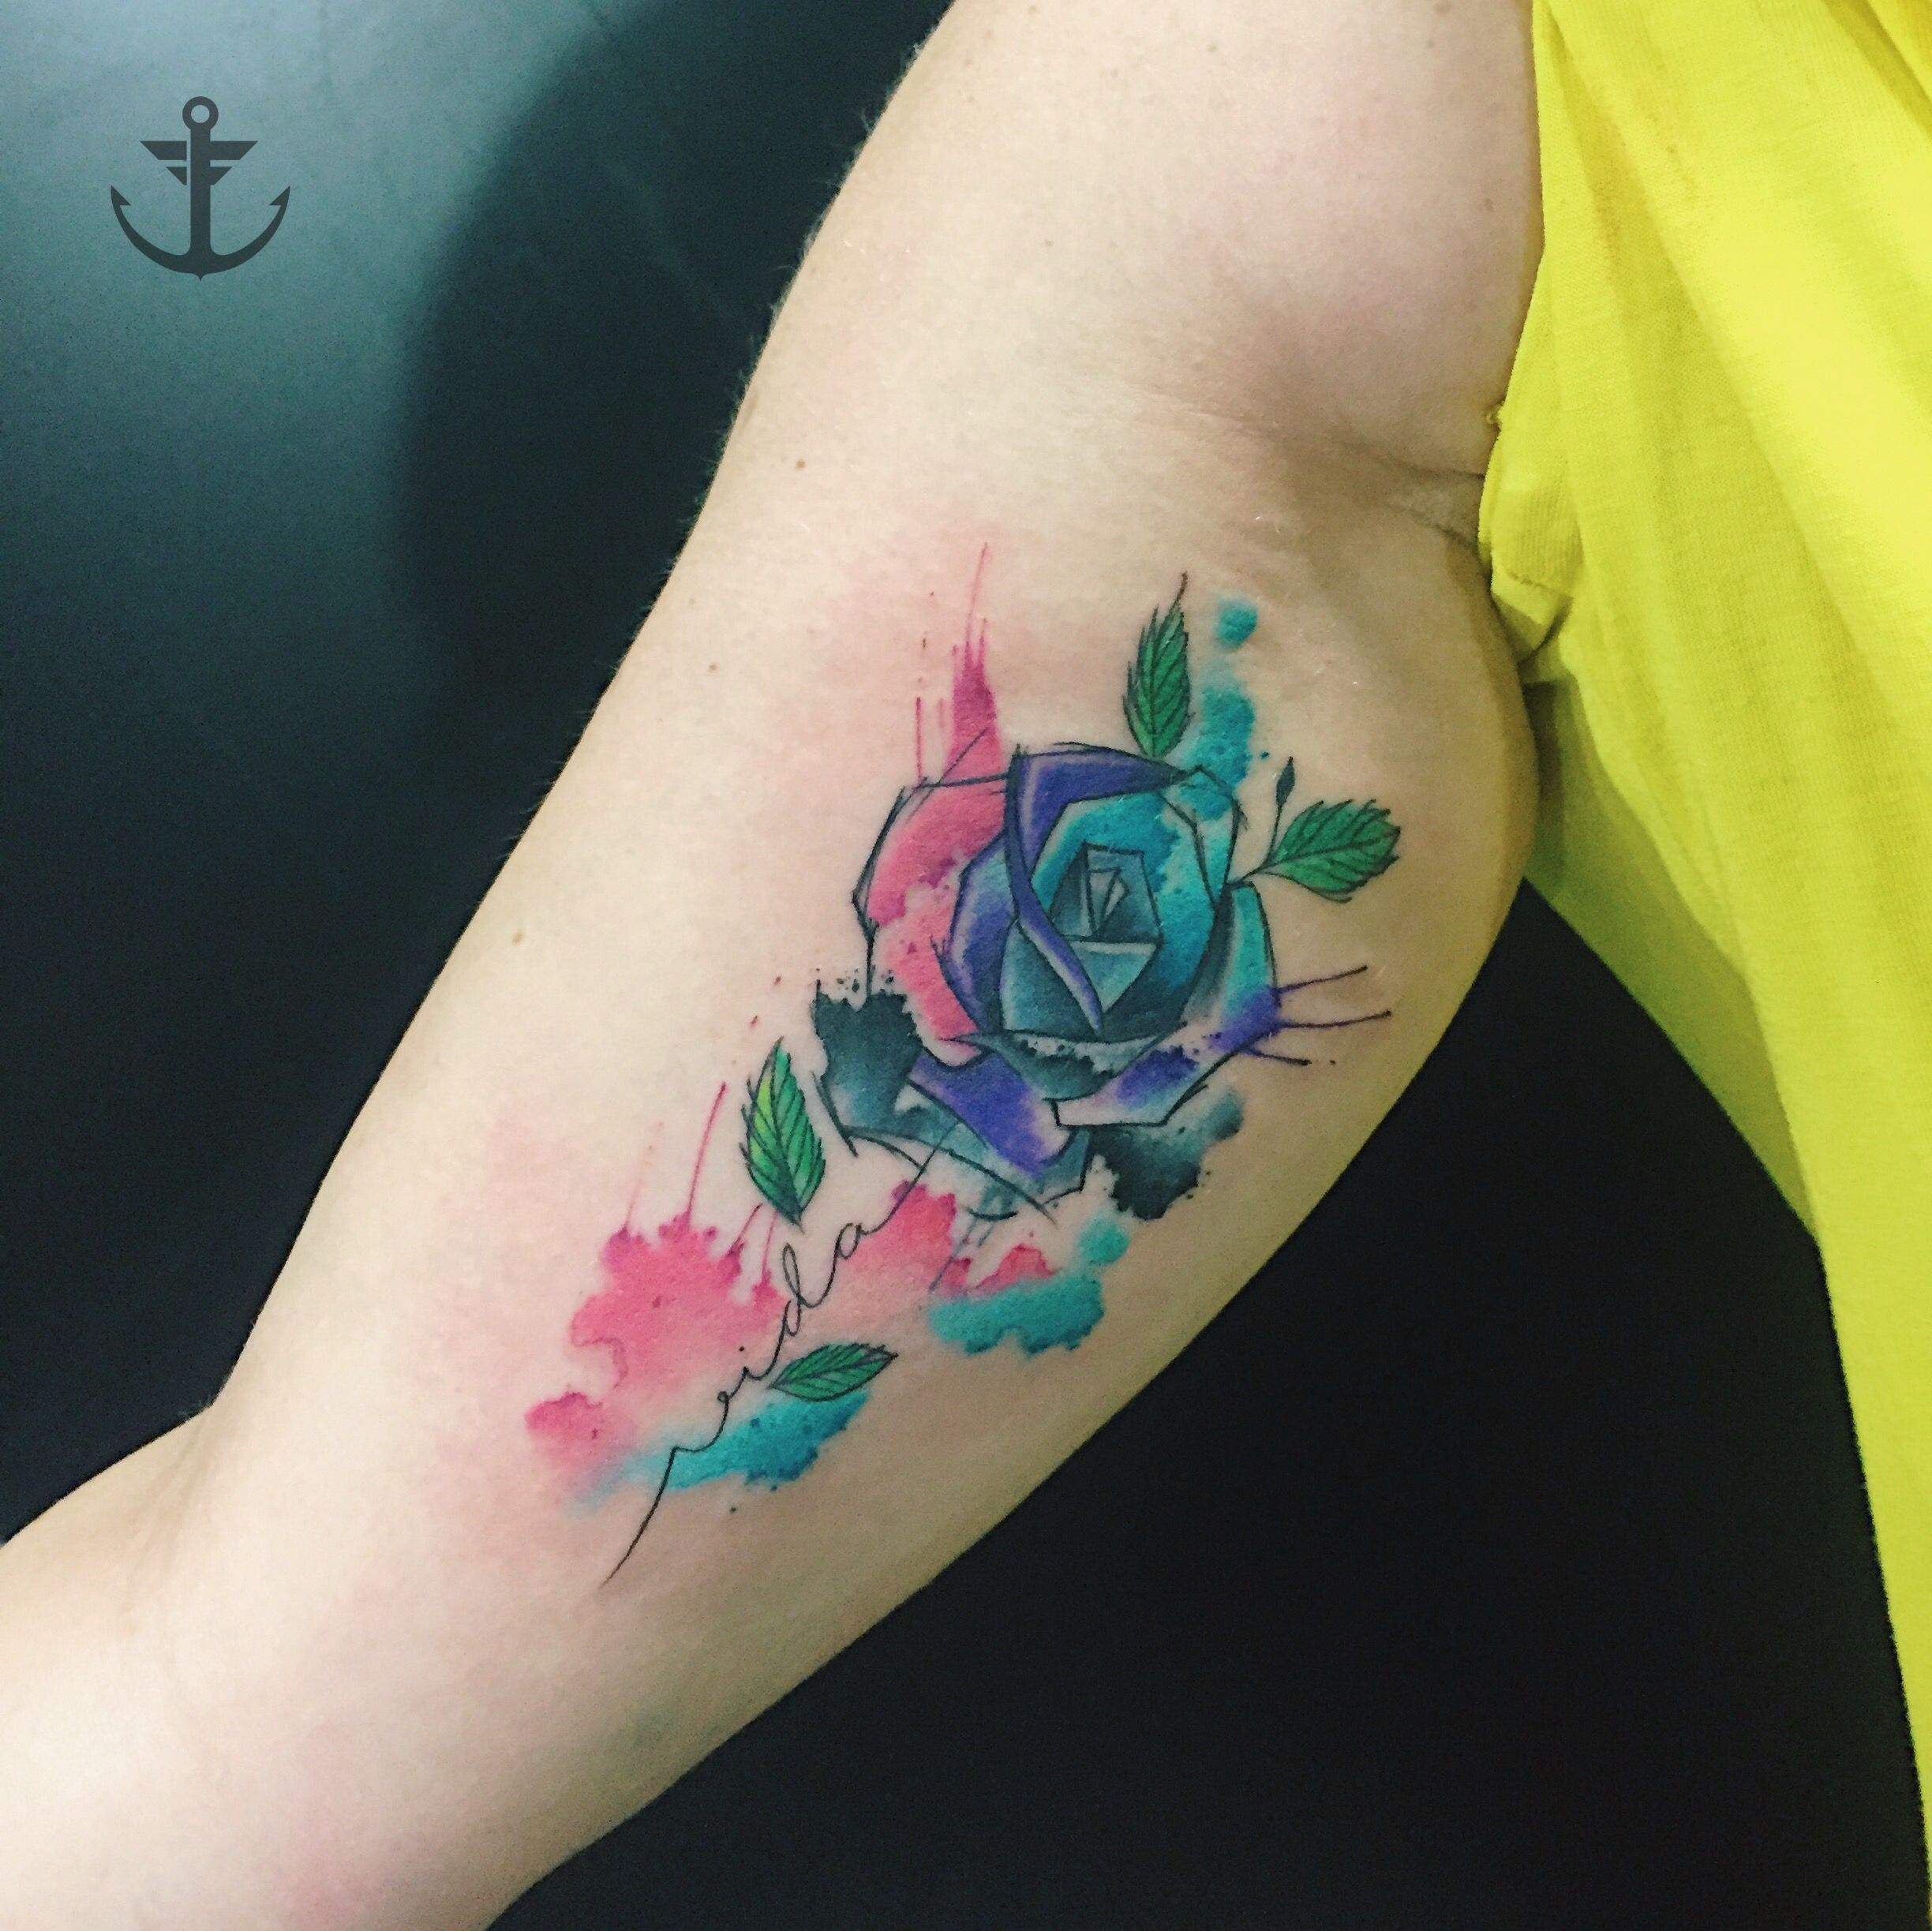 Tattoo By Felipe Bernardes Brazilian Tattoo Artist Watercolor